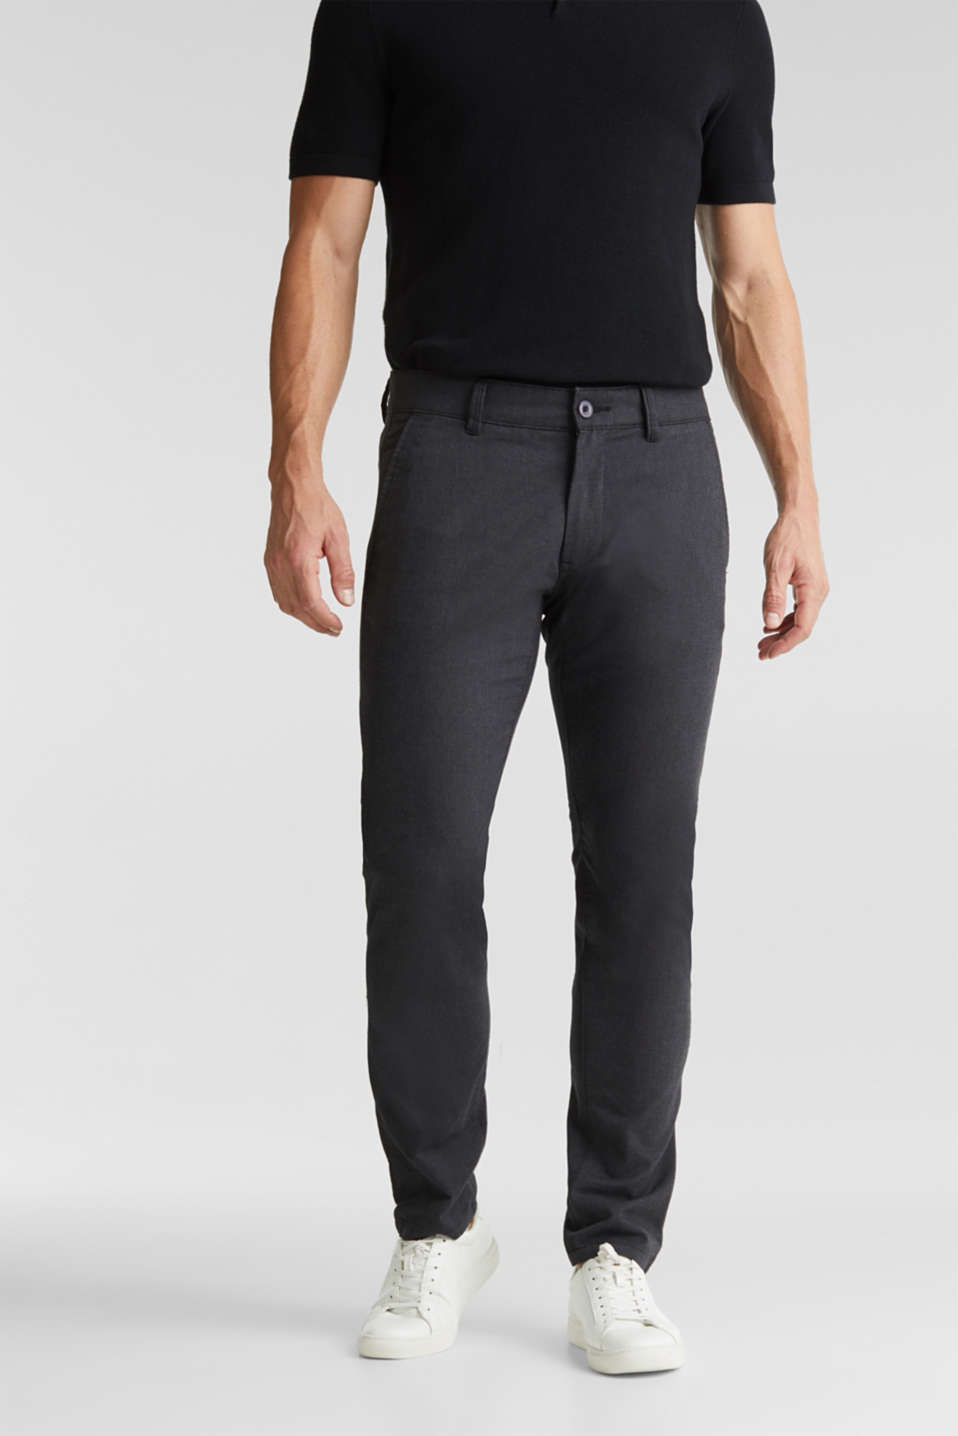 Stretch twill trousers with a belt, ANTHRACITE, detail image number 0